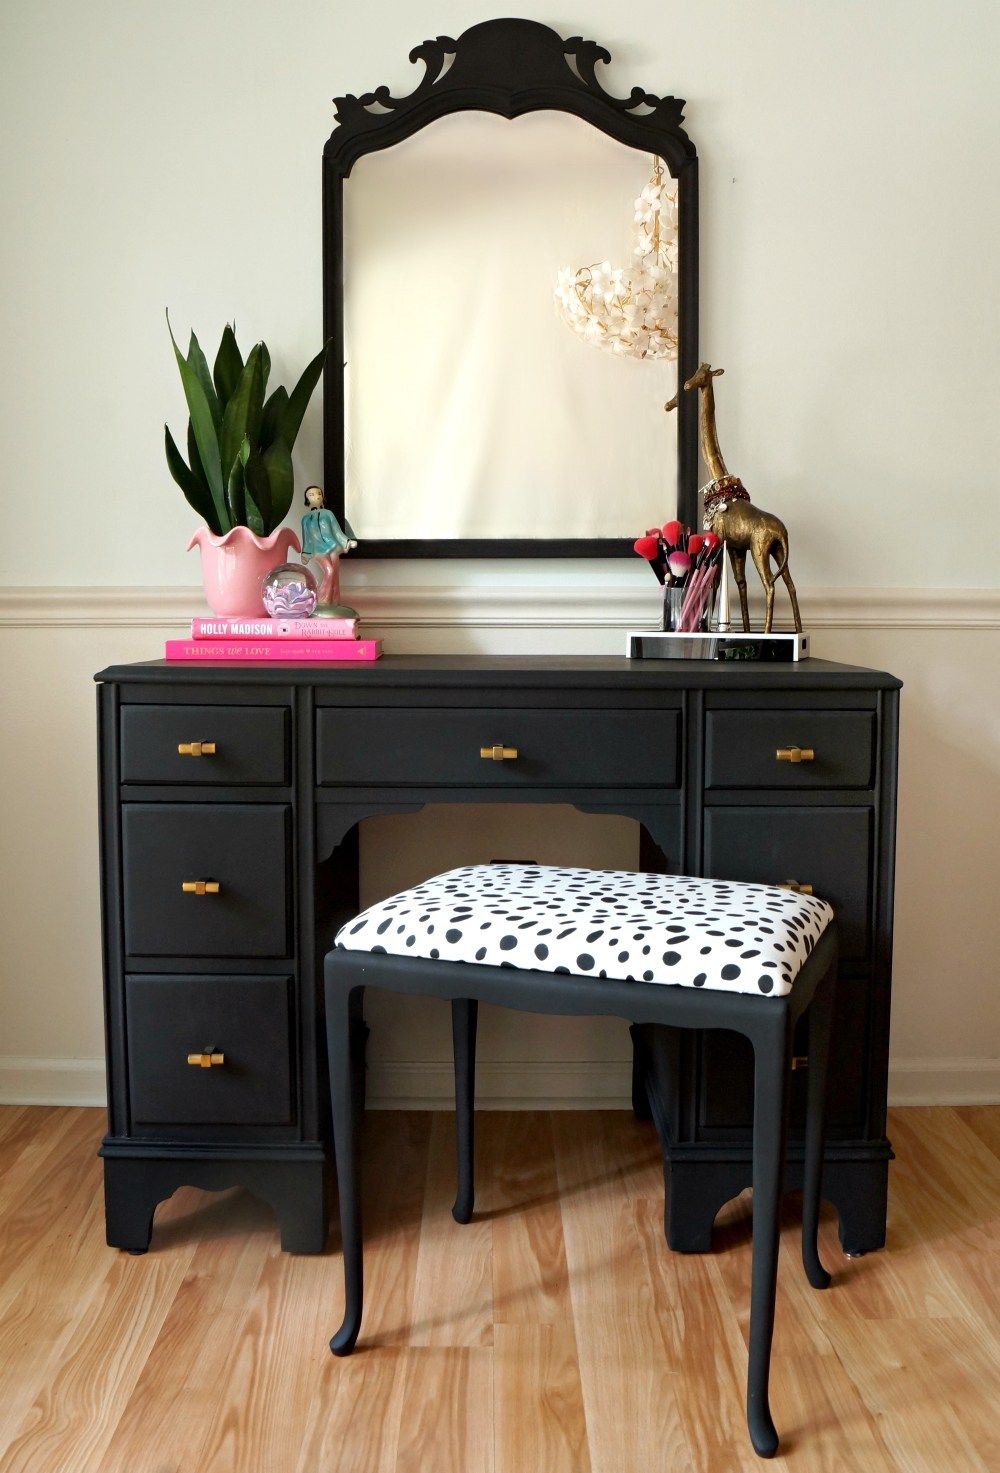 Black And Gold Vanity Set With Polkadot Seat So Cute Makeup Table